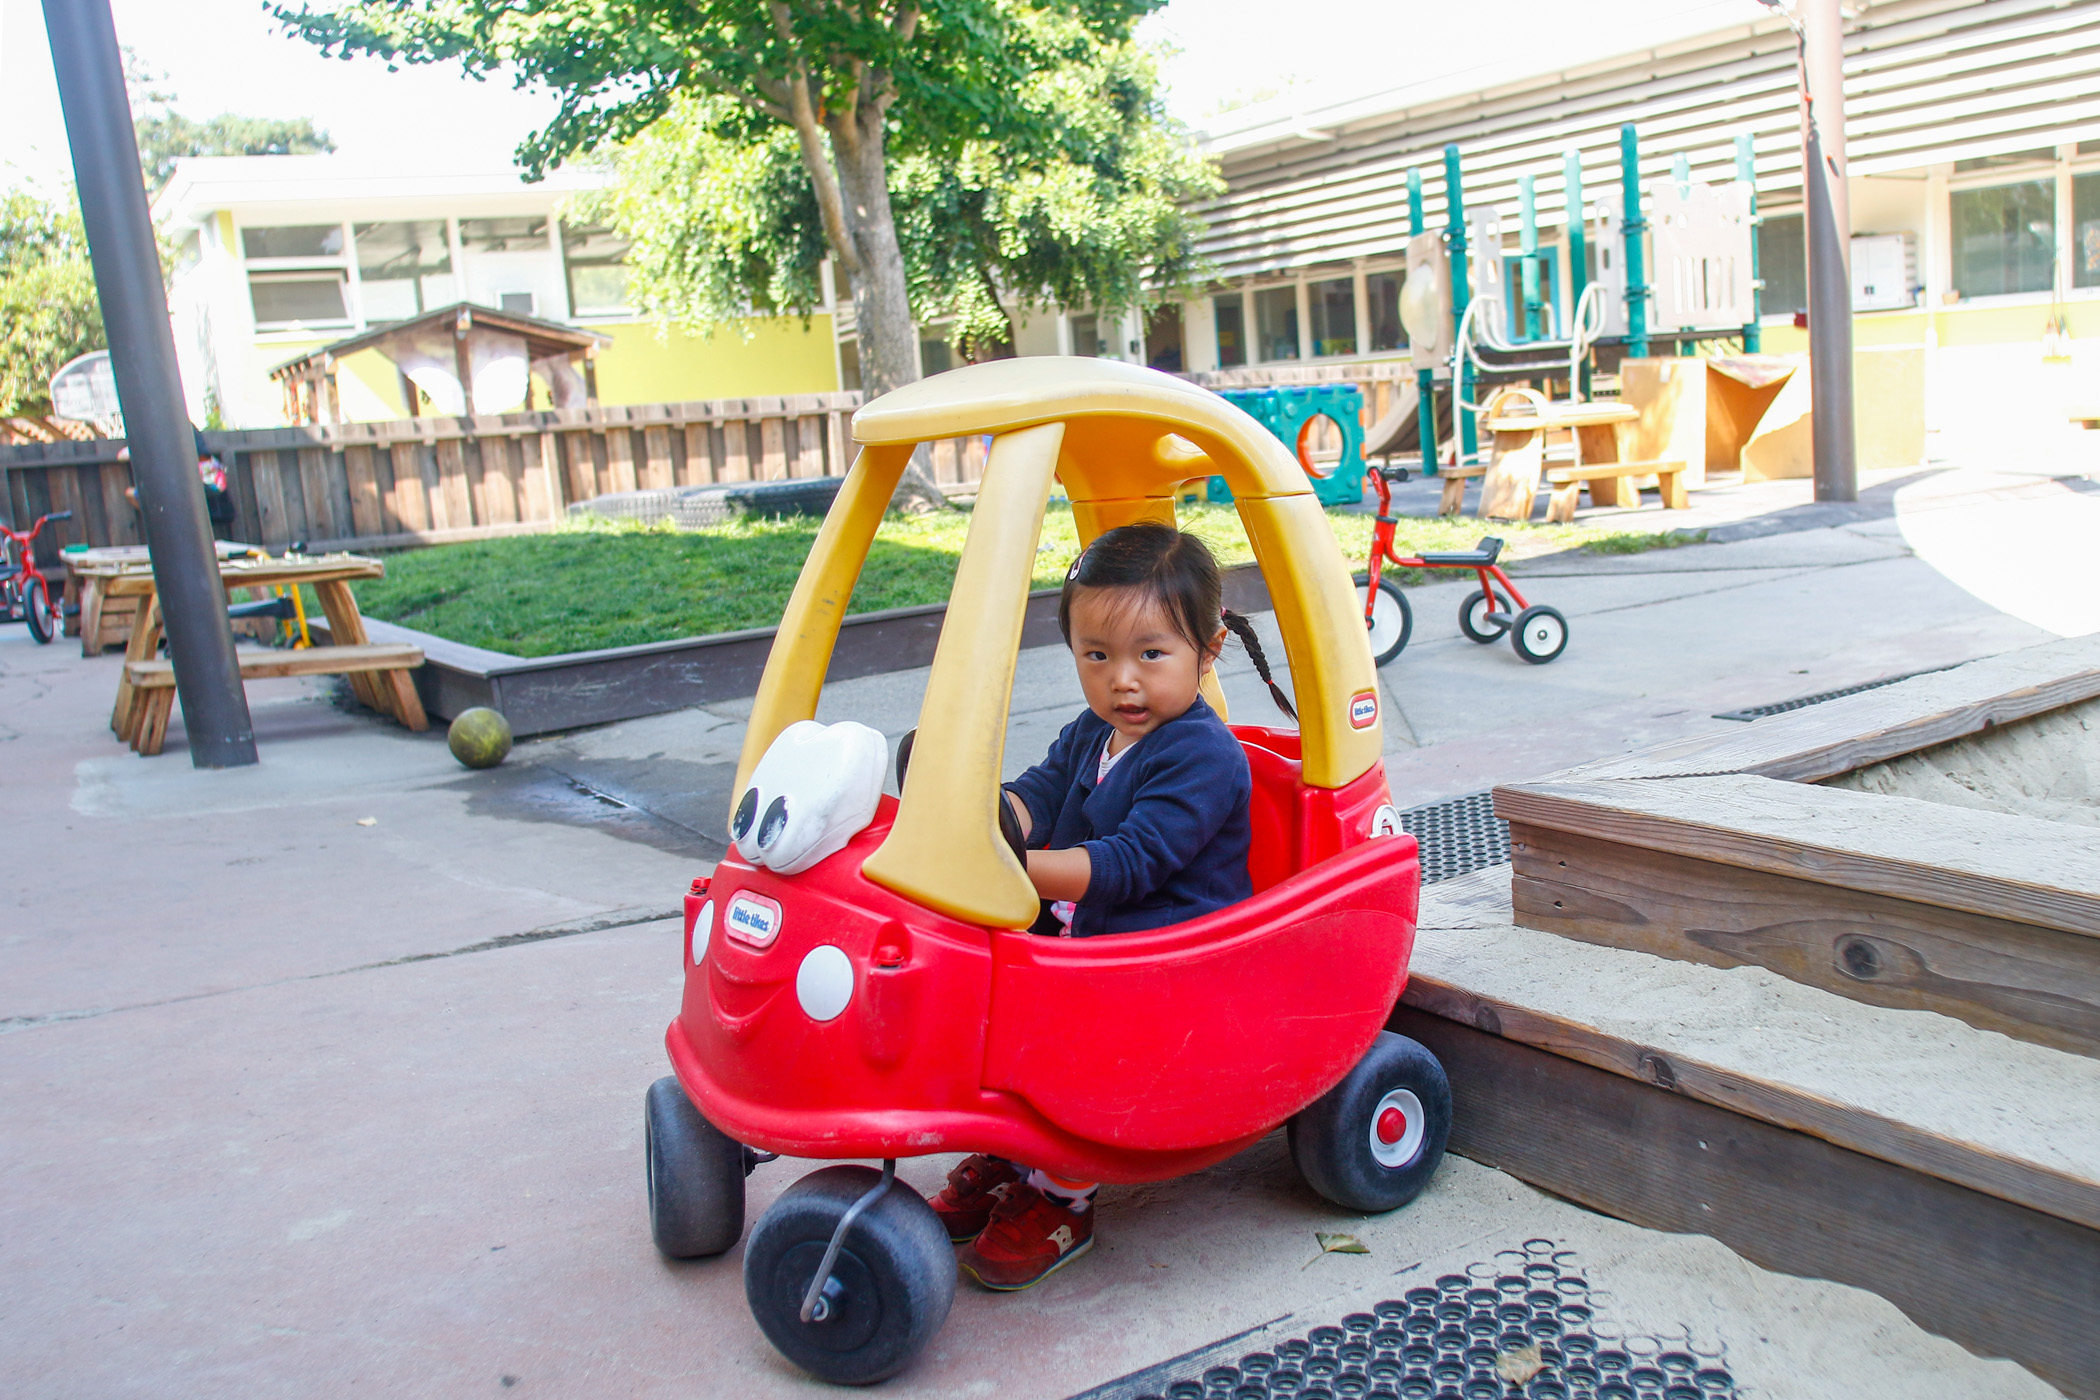 Iris, a preschooler at the nonprofitChildren's Preschool Center, plays inone of three playgrounds at theschool, which has provided services for babies through children age5 in its 10 rooms at Cubberley for more than 30 years.